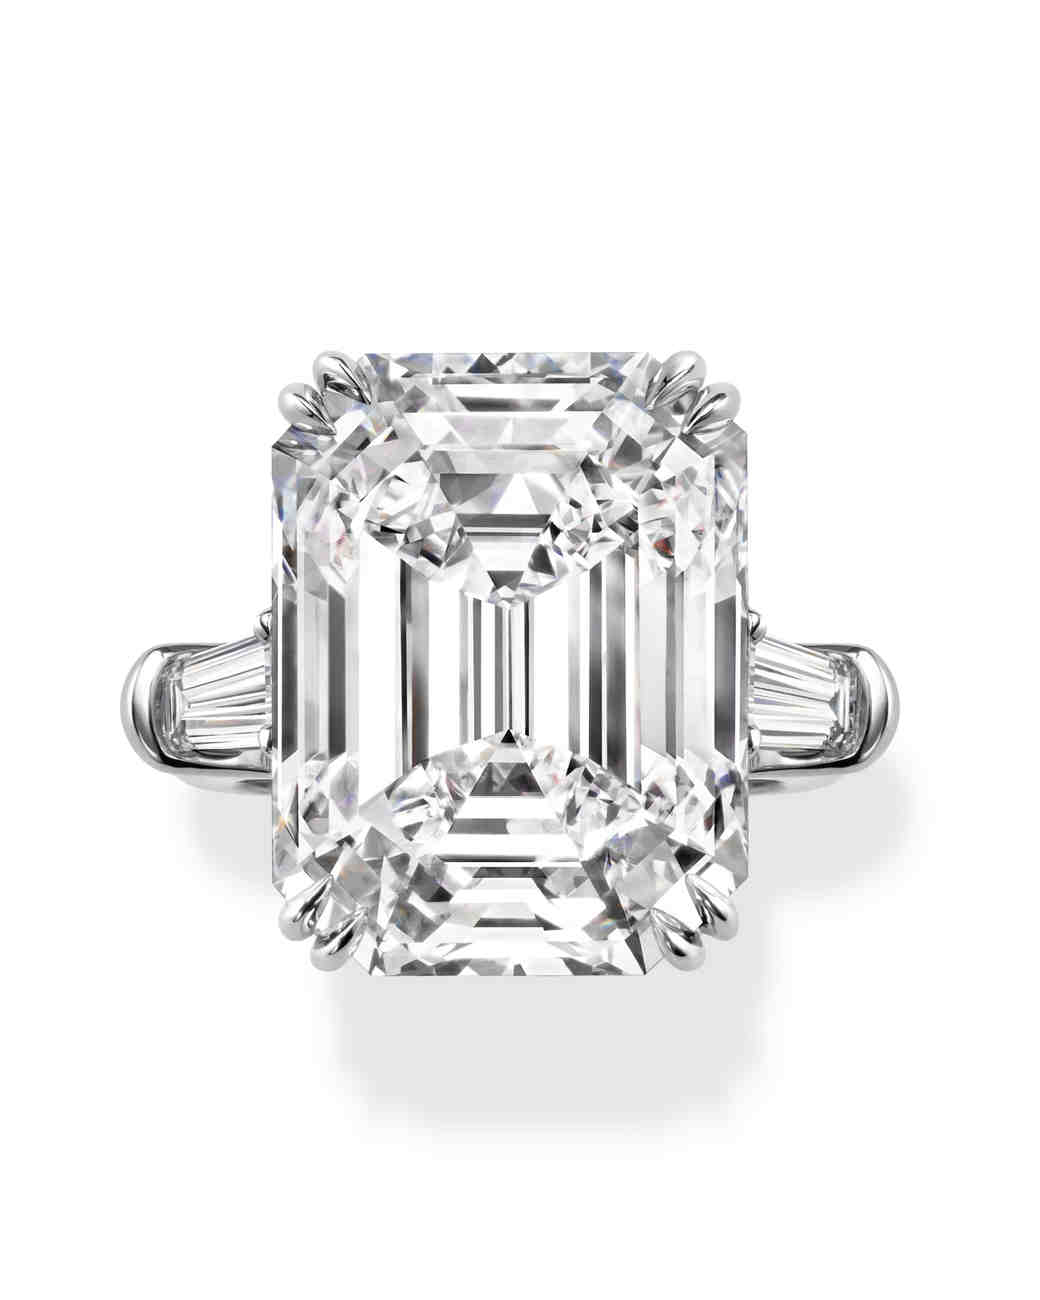 the en by jd engagment hero cut which is engagement positioning rings emerald facet favored jaredstore unique decades been for back jared go way its jewellery cms with have and defined